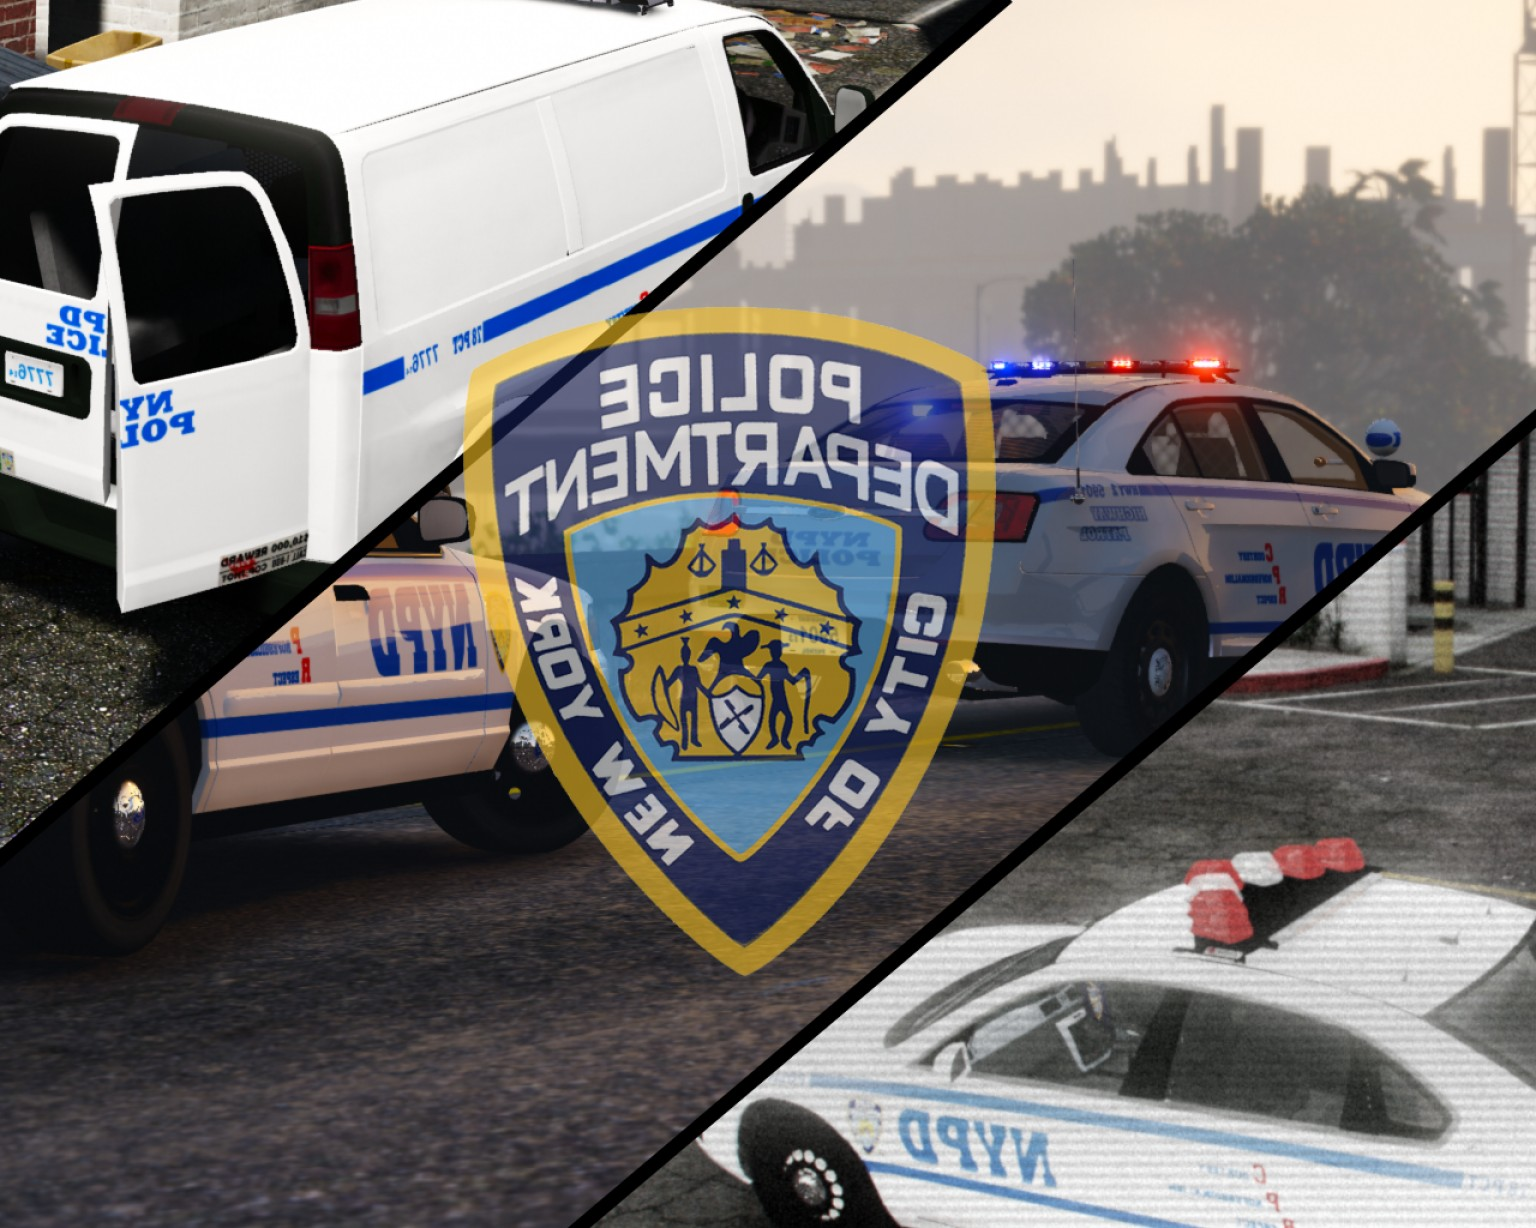 Custom Police Cars Vector: New York Police Department Skin Pack Fedsig Vector Light Fix Realistic Nyc Licence Plates Custom Made Bumperstickers K Resolution